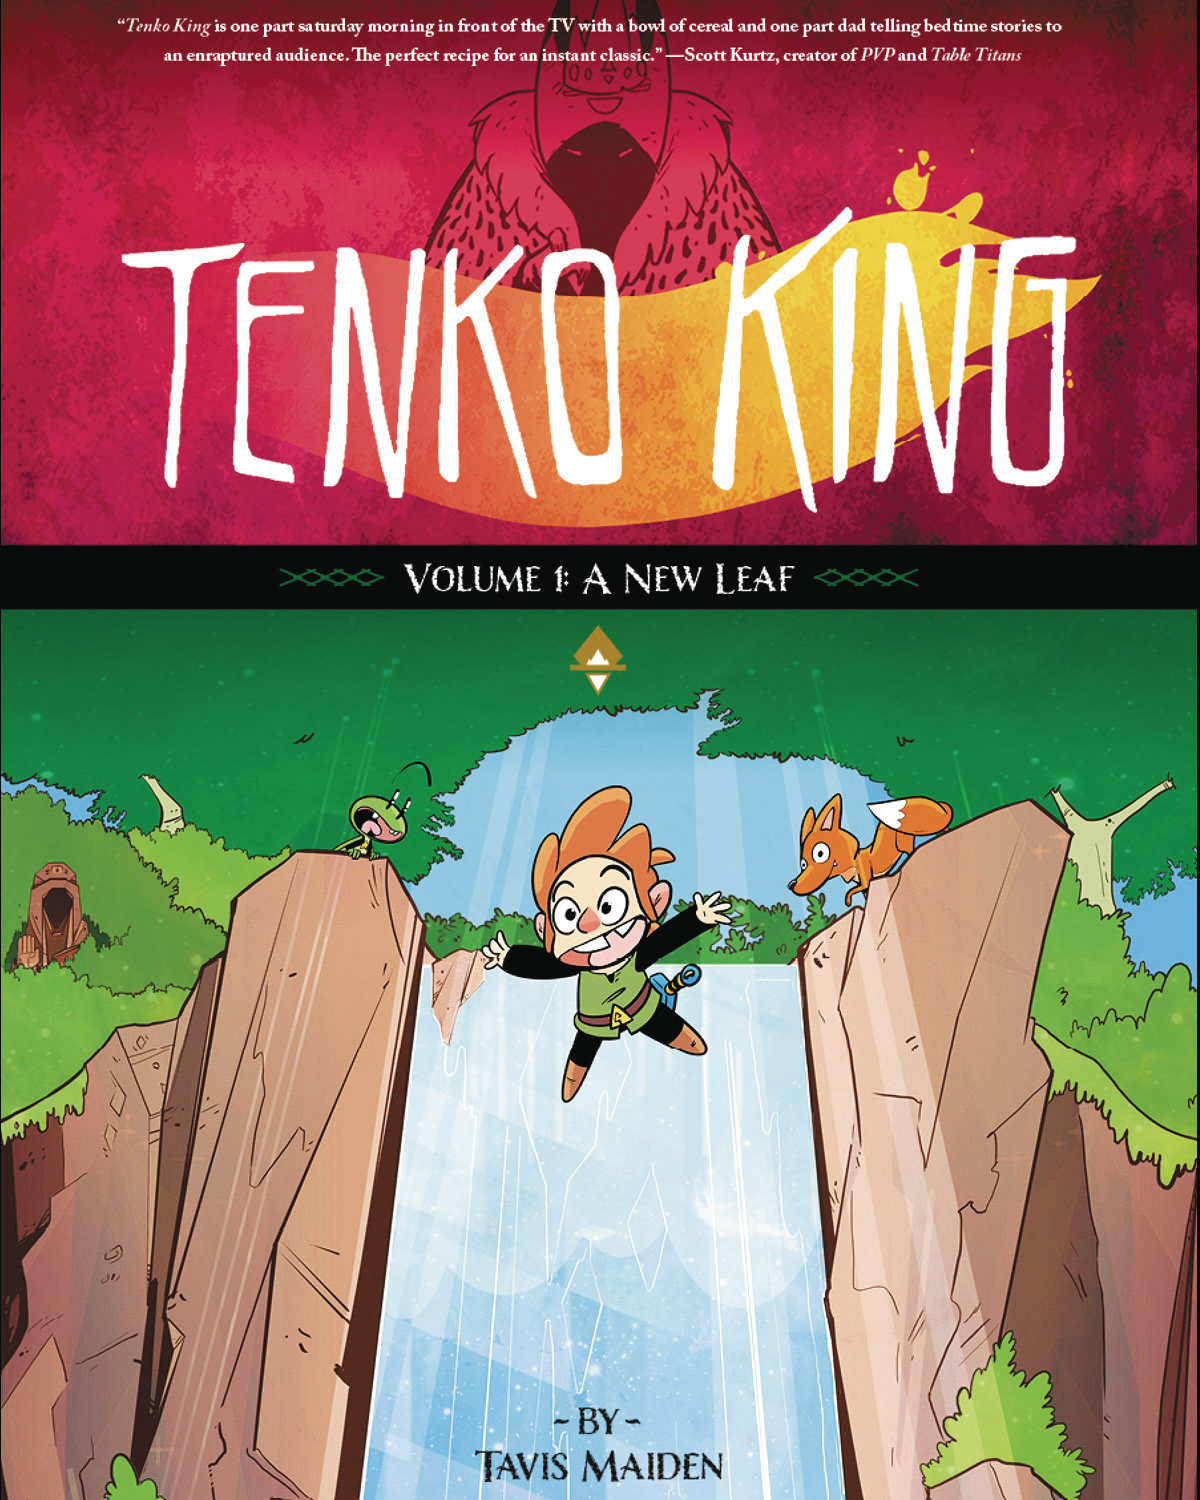 TENKO KING GN VOL 01 NEW LEAF